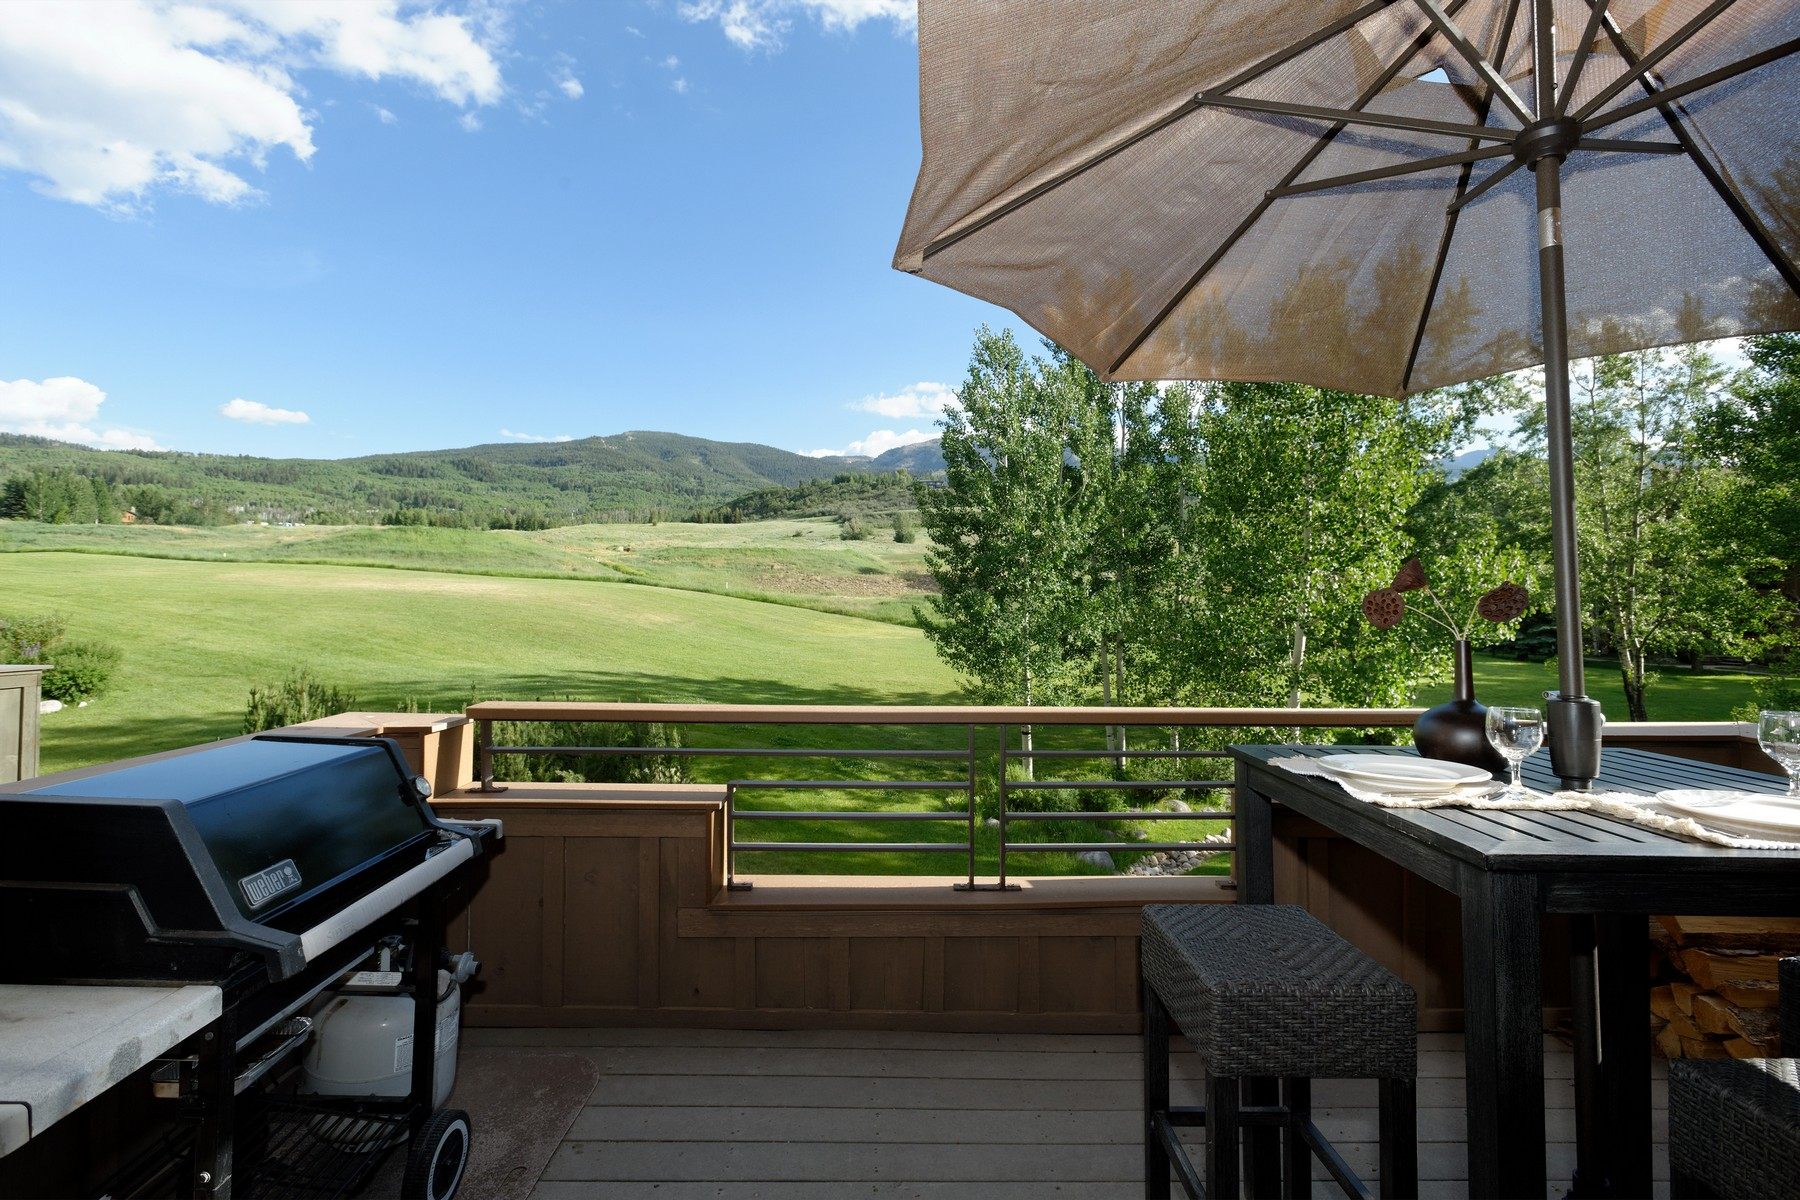 共管物業 為 出售 在 Best Golf and Ski Location 150 Snowmass Club Circle Unit # 1521 Snowmass Village, 科羅拉多州, 81615 美國